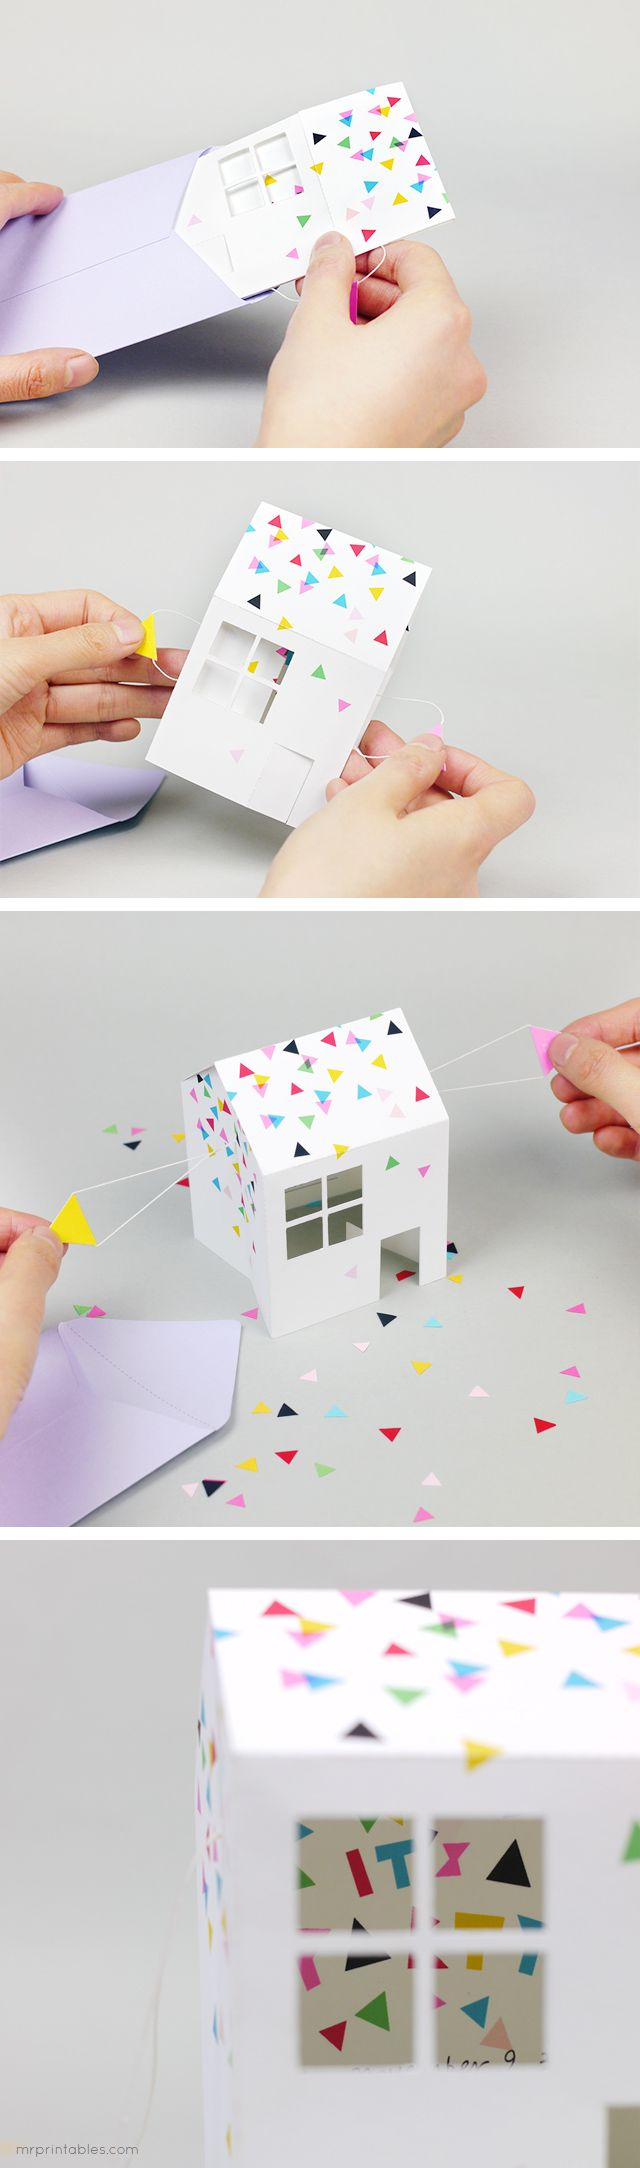 Popup house party invitation mr printables diy creative mail